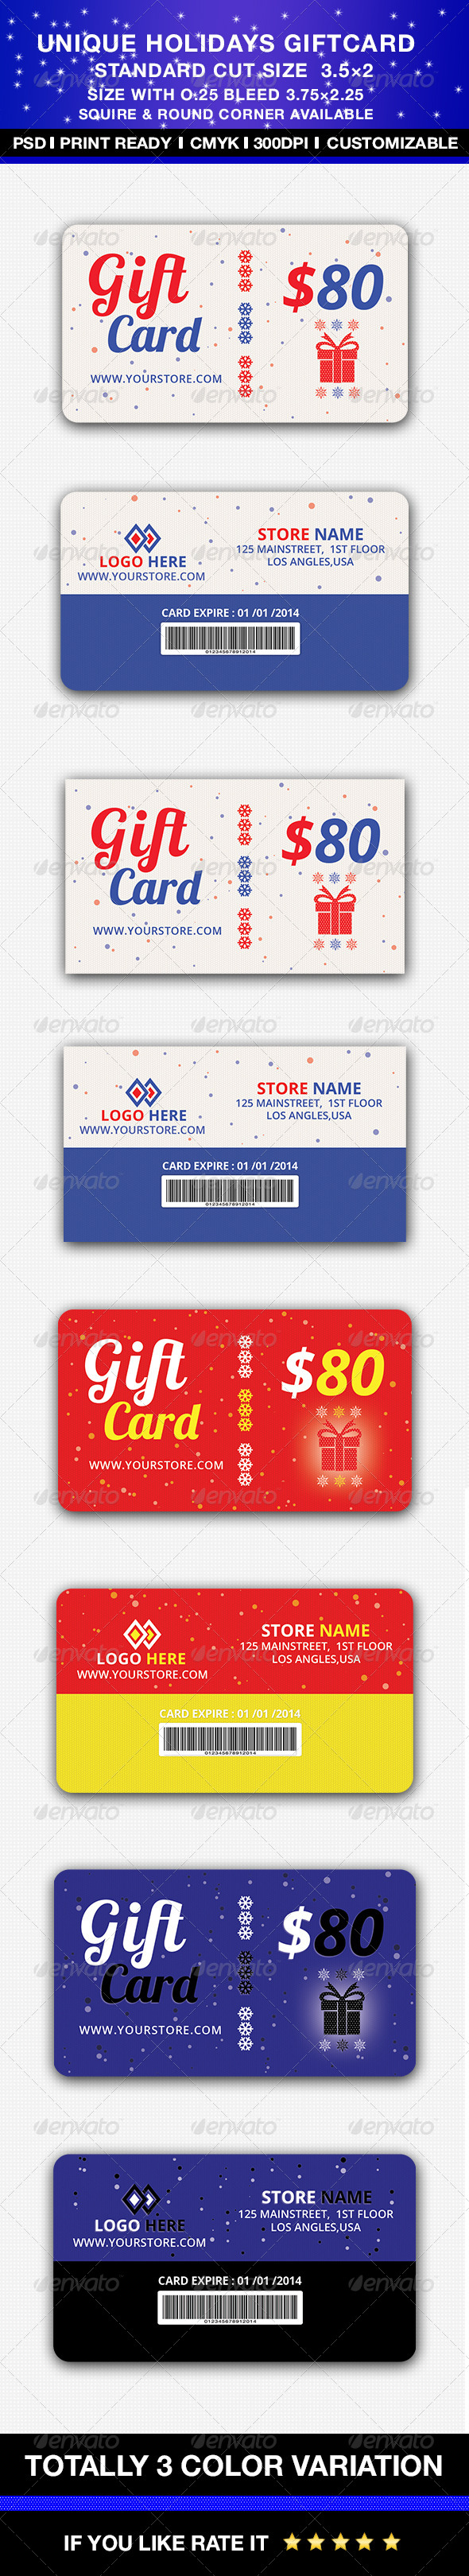 GraphicRiver Unique Holidays Gift card 6342068